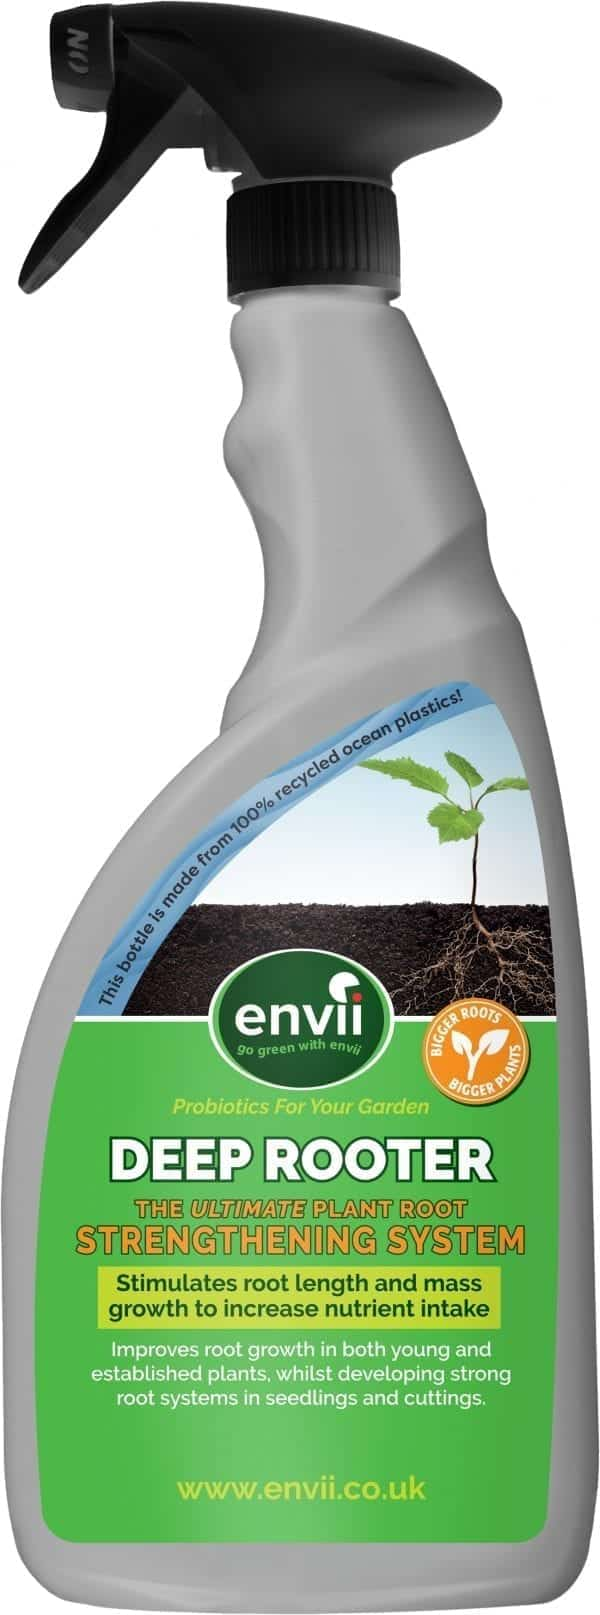 front view of Envii Deep Rooter our plant root stimulator